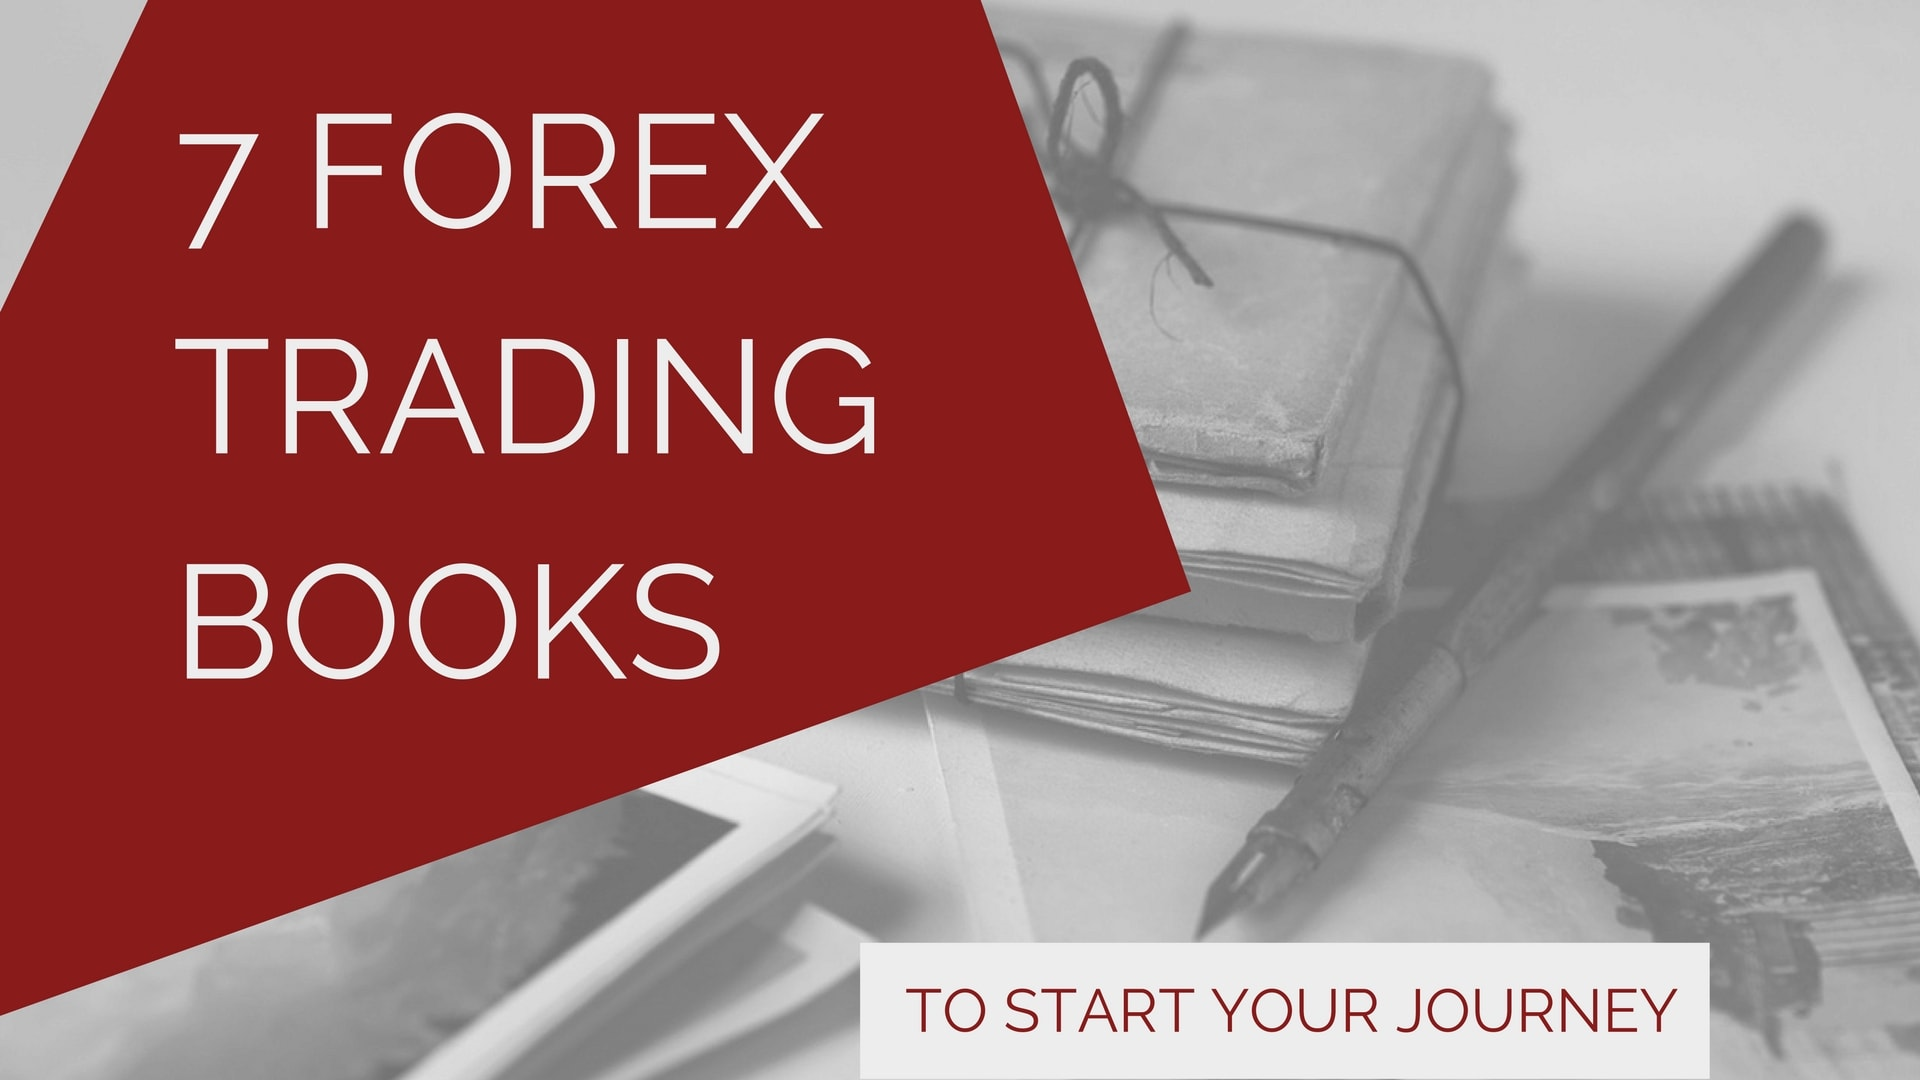 7 Forex Trading Books To Start Your Journey